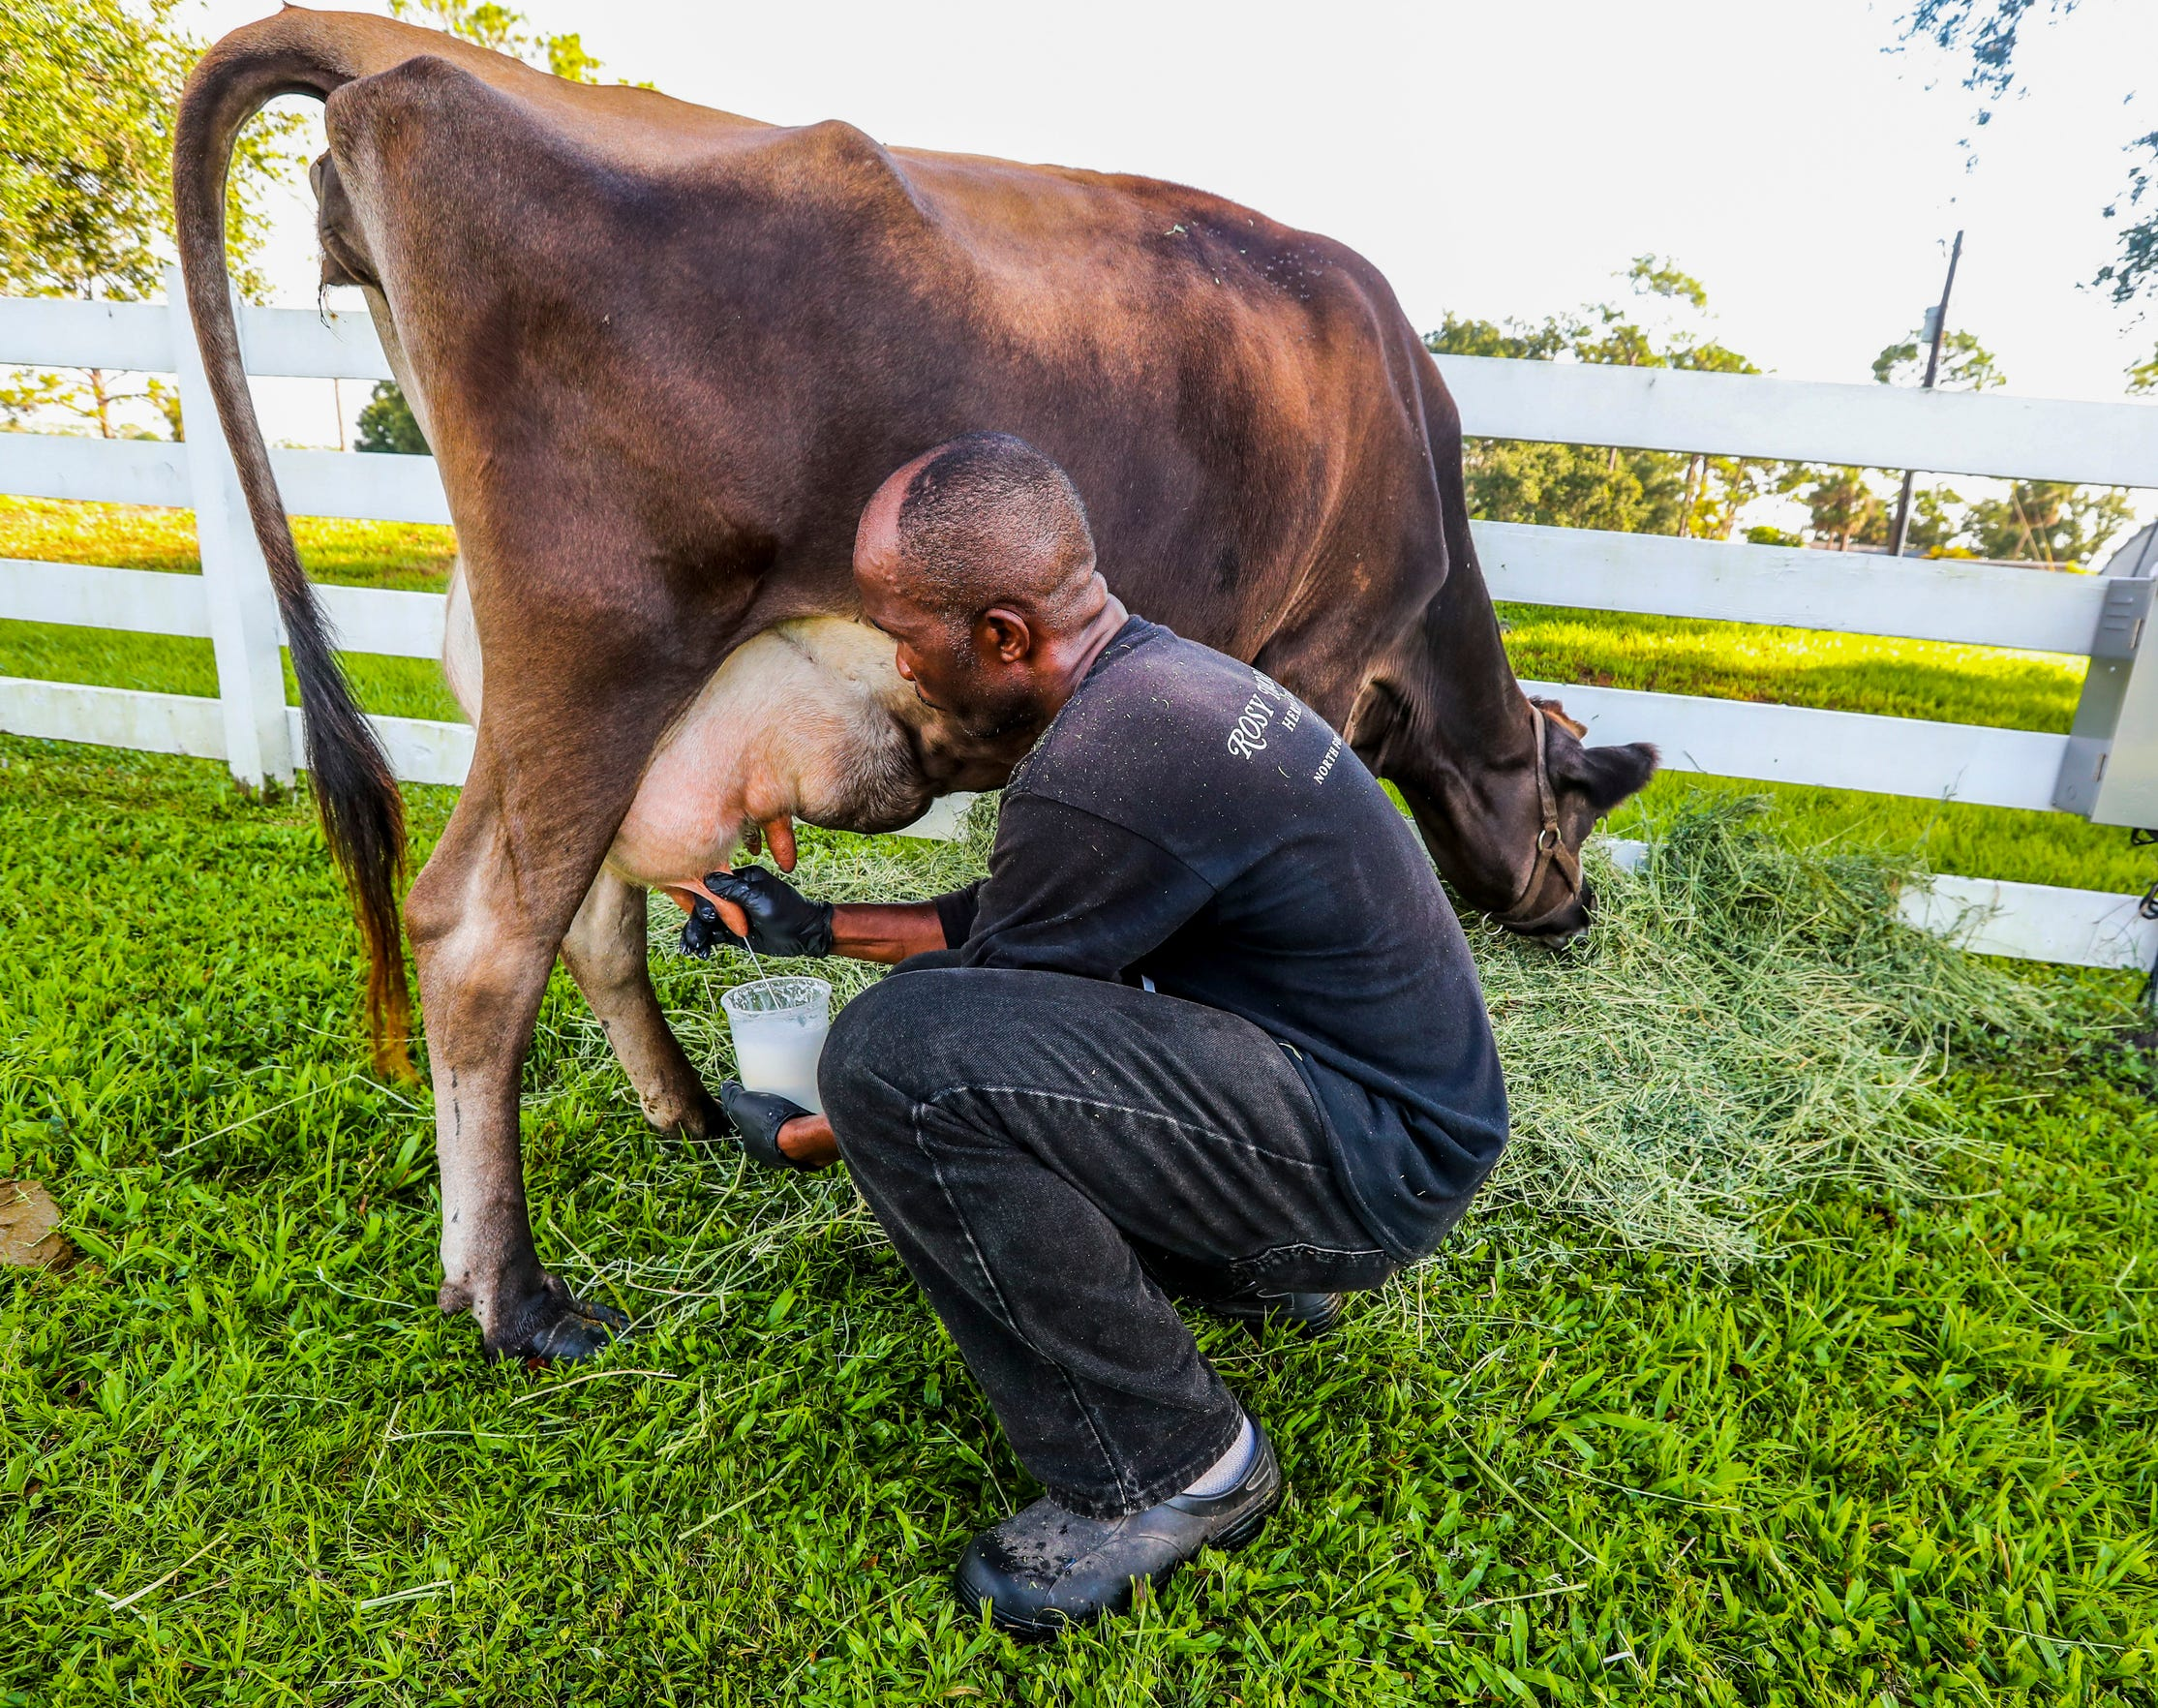 Seligny Jacsaint, a farm assistant at Rosy Tomorrows, milks Brie, the farm's Jersey dairy cow. Brie's milk is used to make the yogurt, ricotta and ice cream at Rosy's on-farm restaurant.